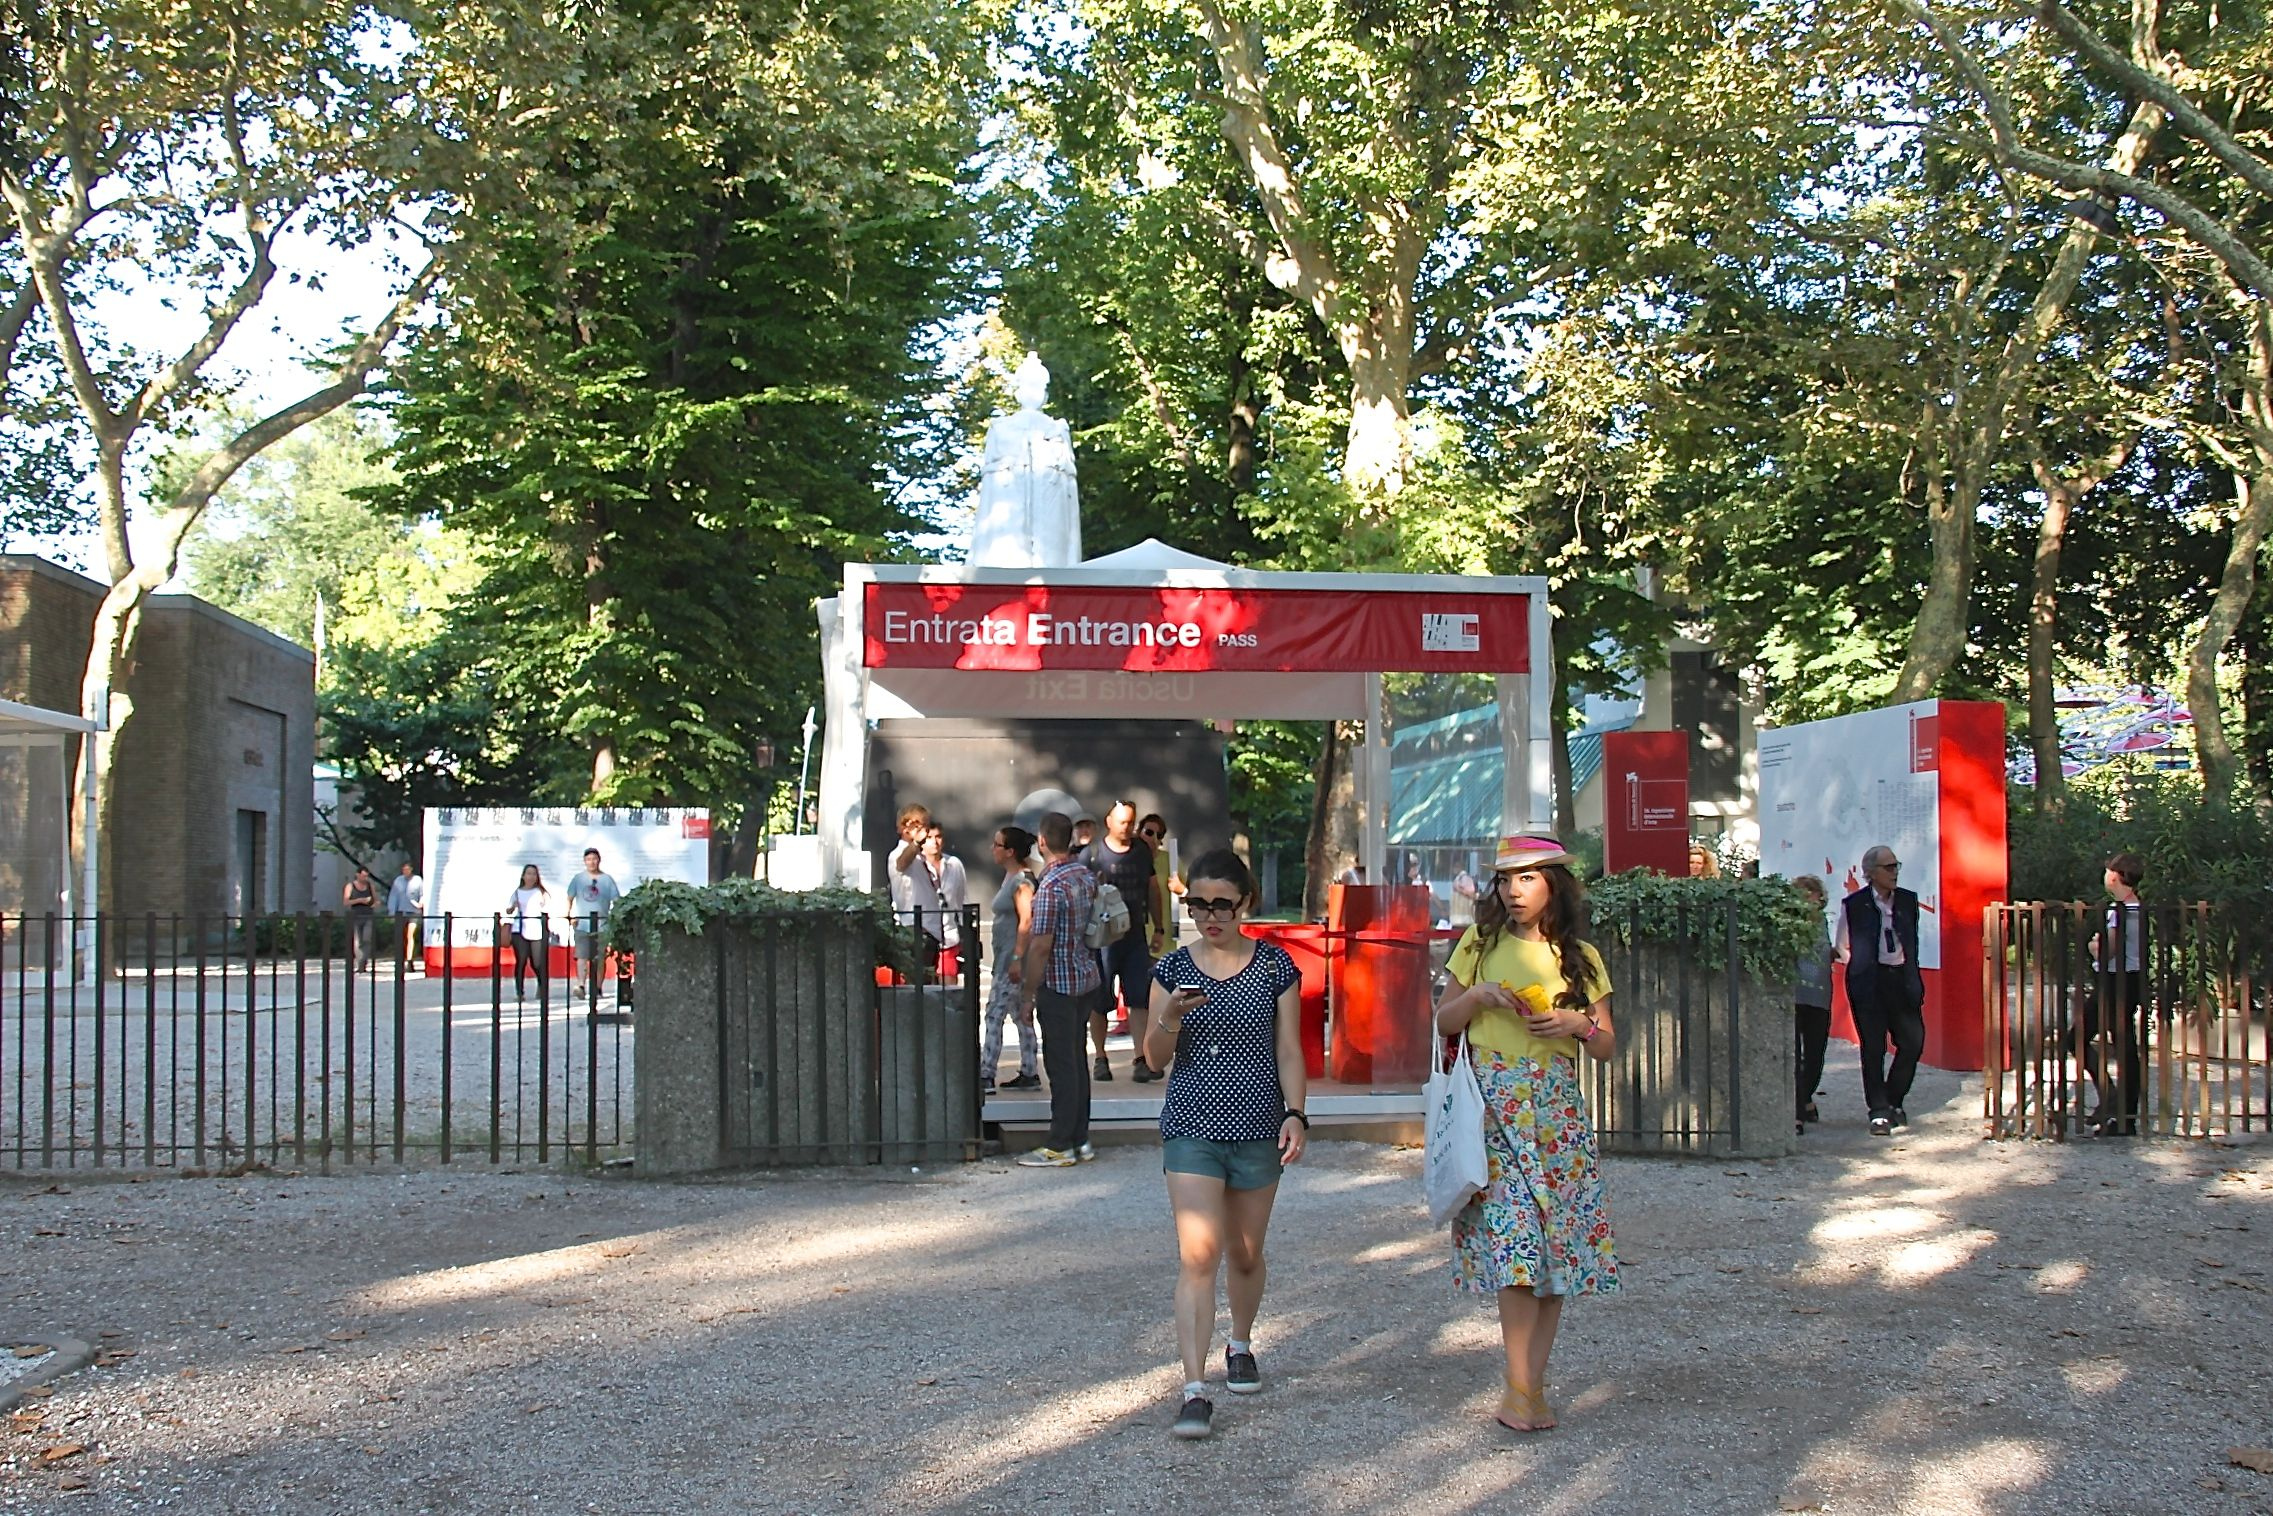 Entrance to the Venice Art Biennale Gardens